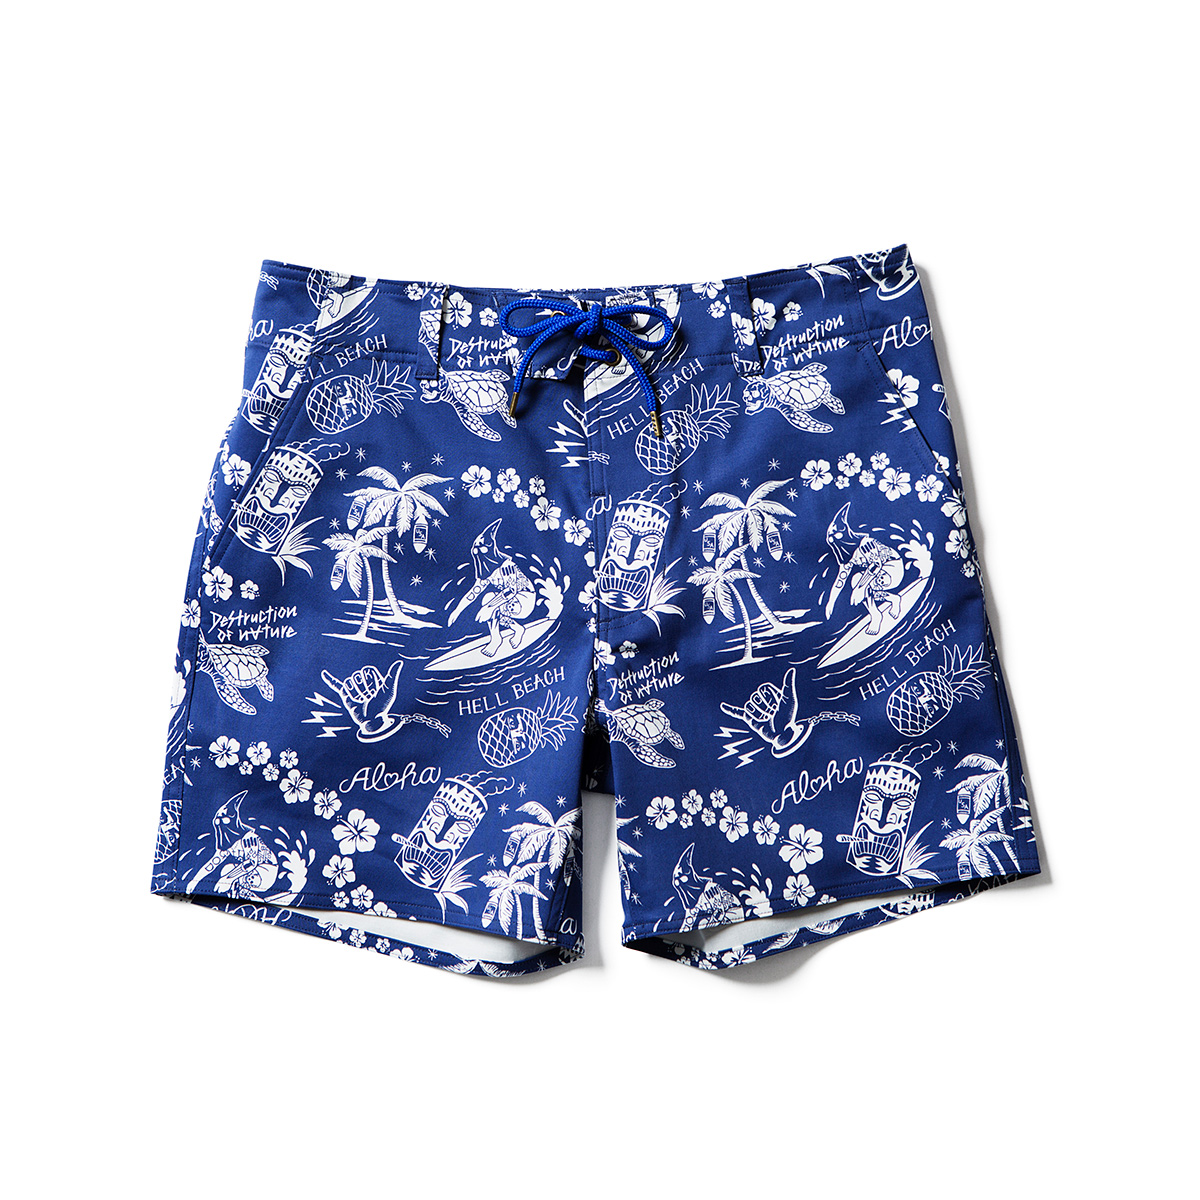 HELL BEACH SHORTS